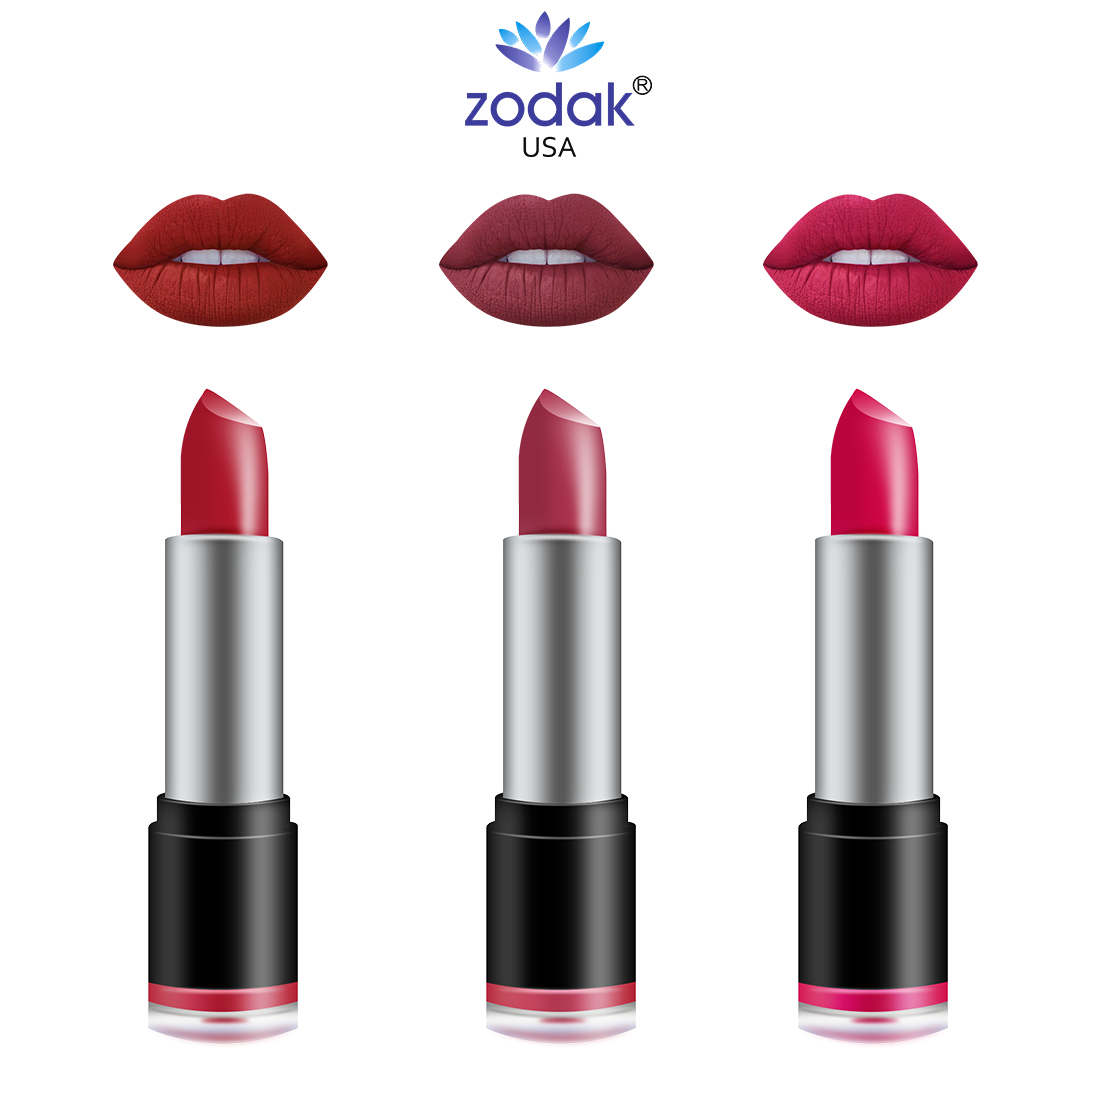 ZODAK Retro - Matte Lipstick pack of 3 (Terminator, spice Red, Sweet Red,, 38 g)